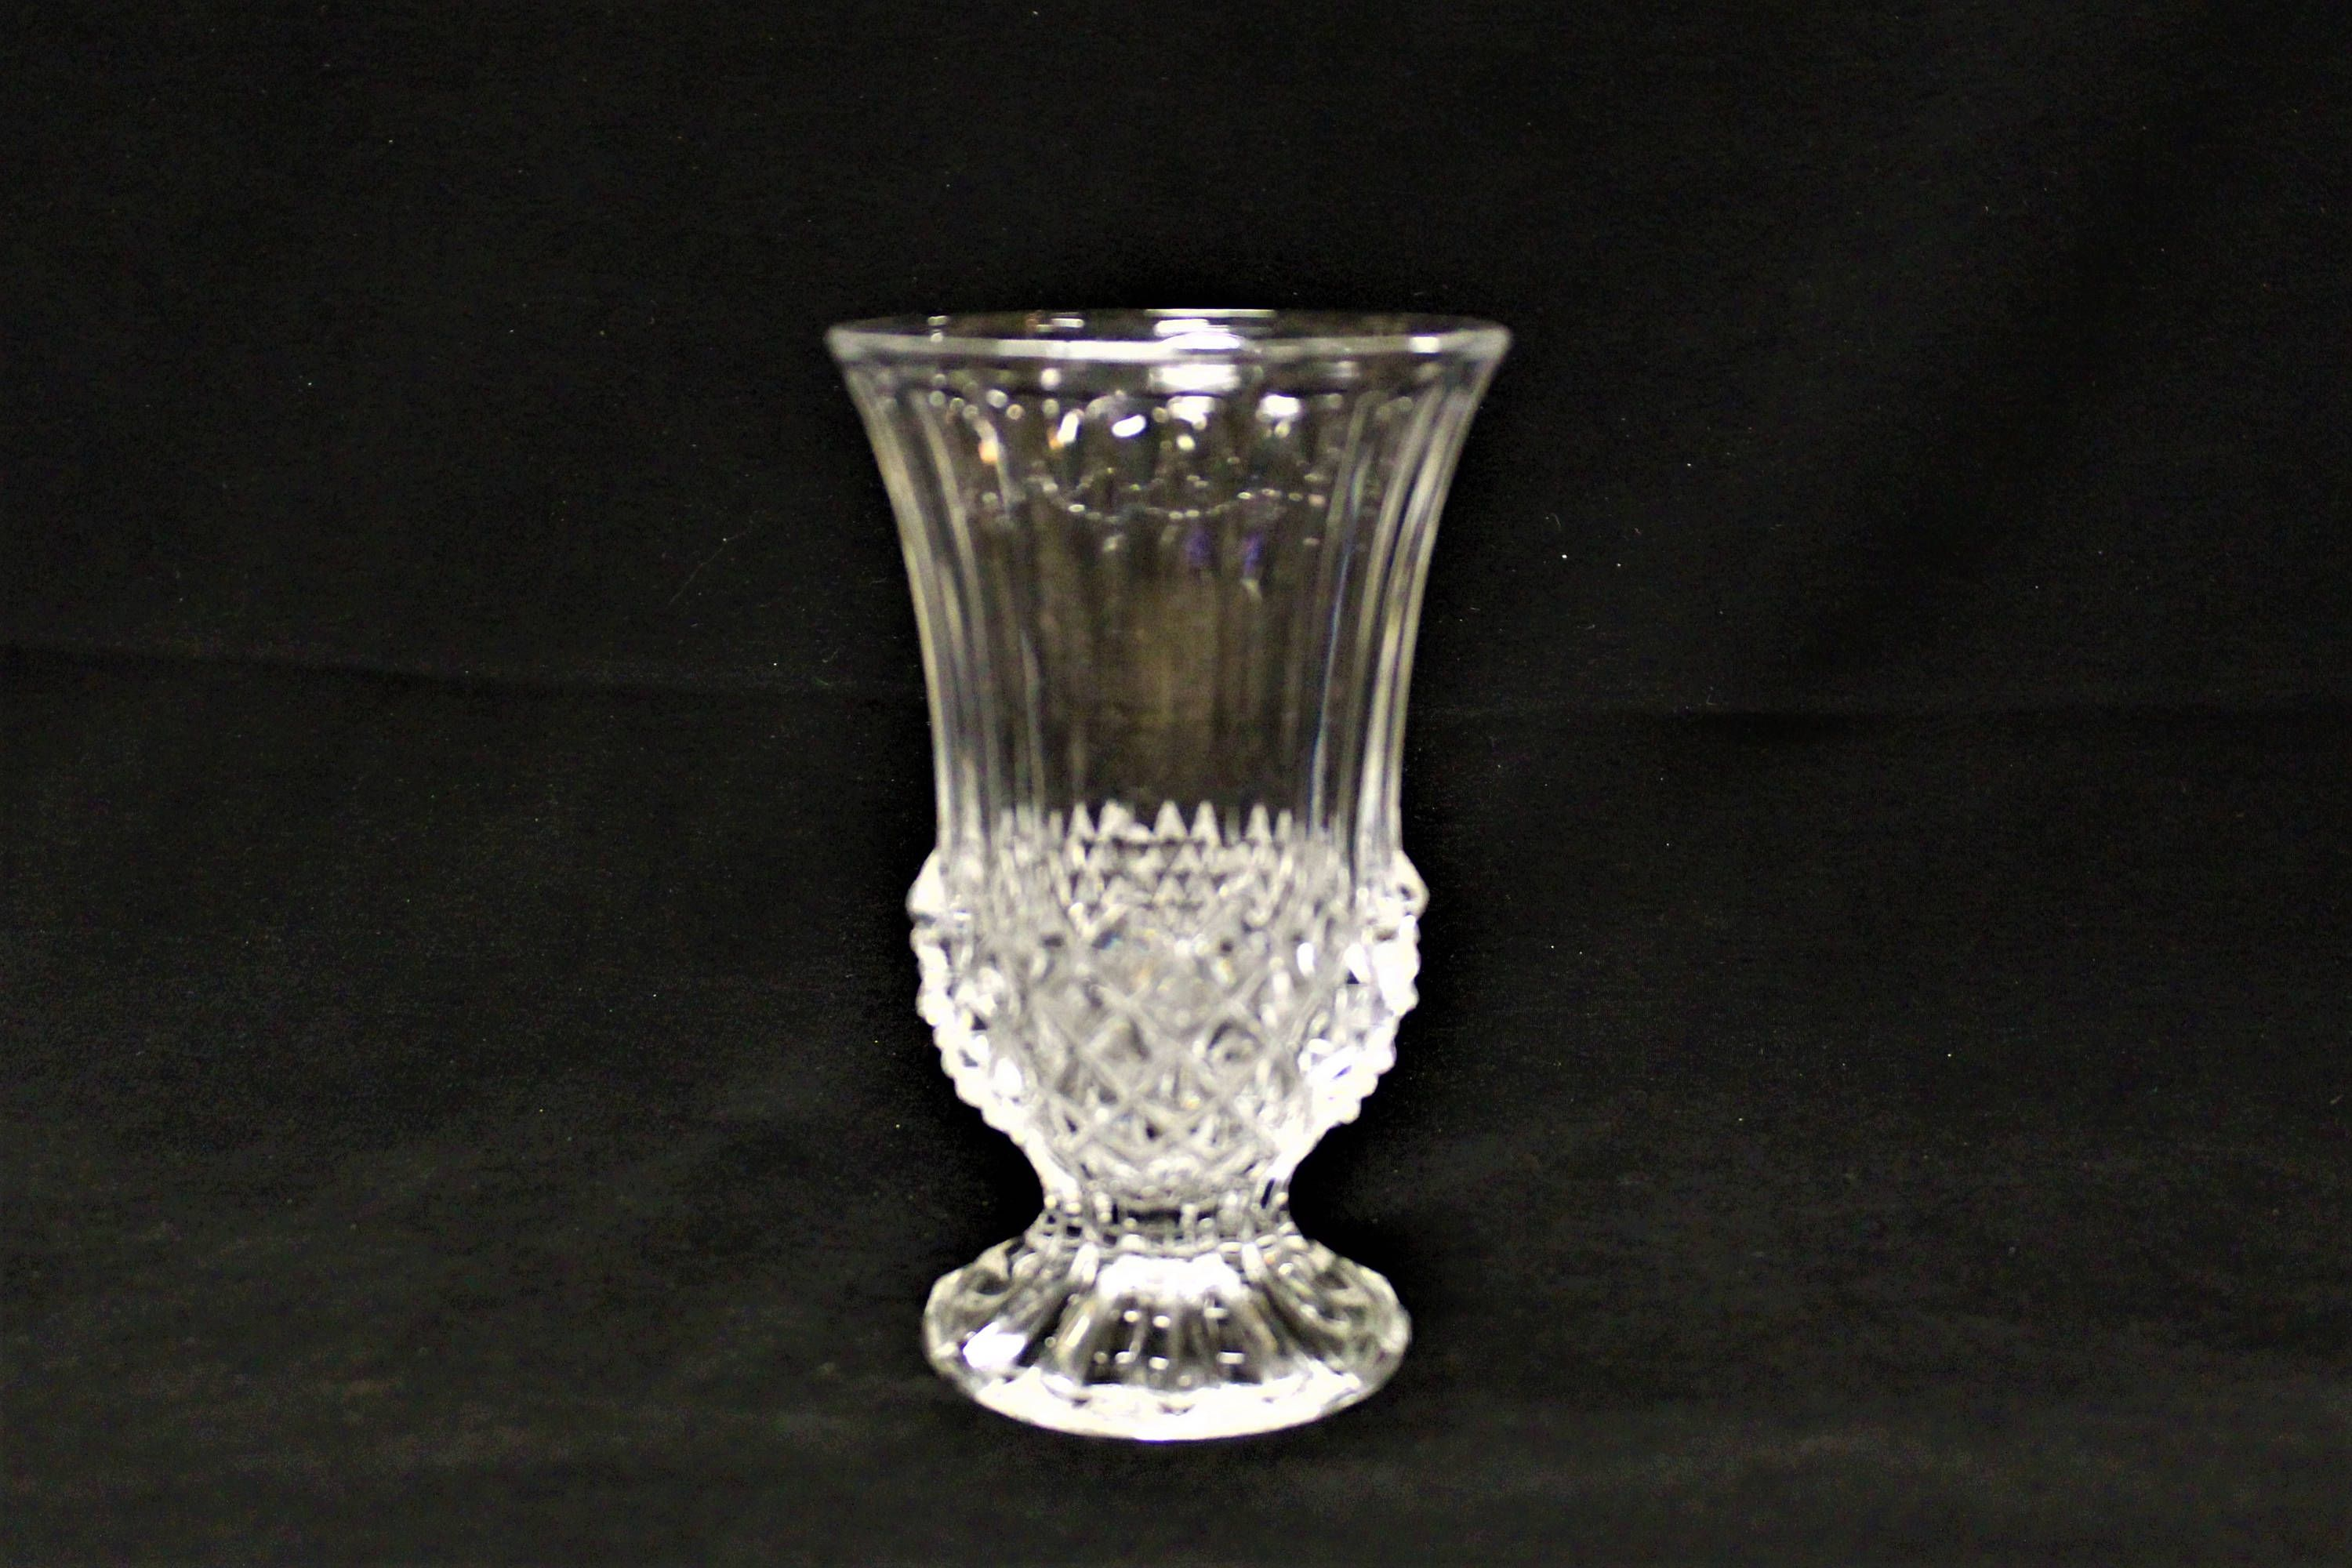 Vintage small cristal d arques durand longchamp pattern footed vintage small cristal d arques durand longchamp pattern footed bud vase 4 34 reviewsmspy